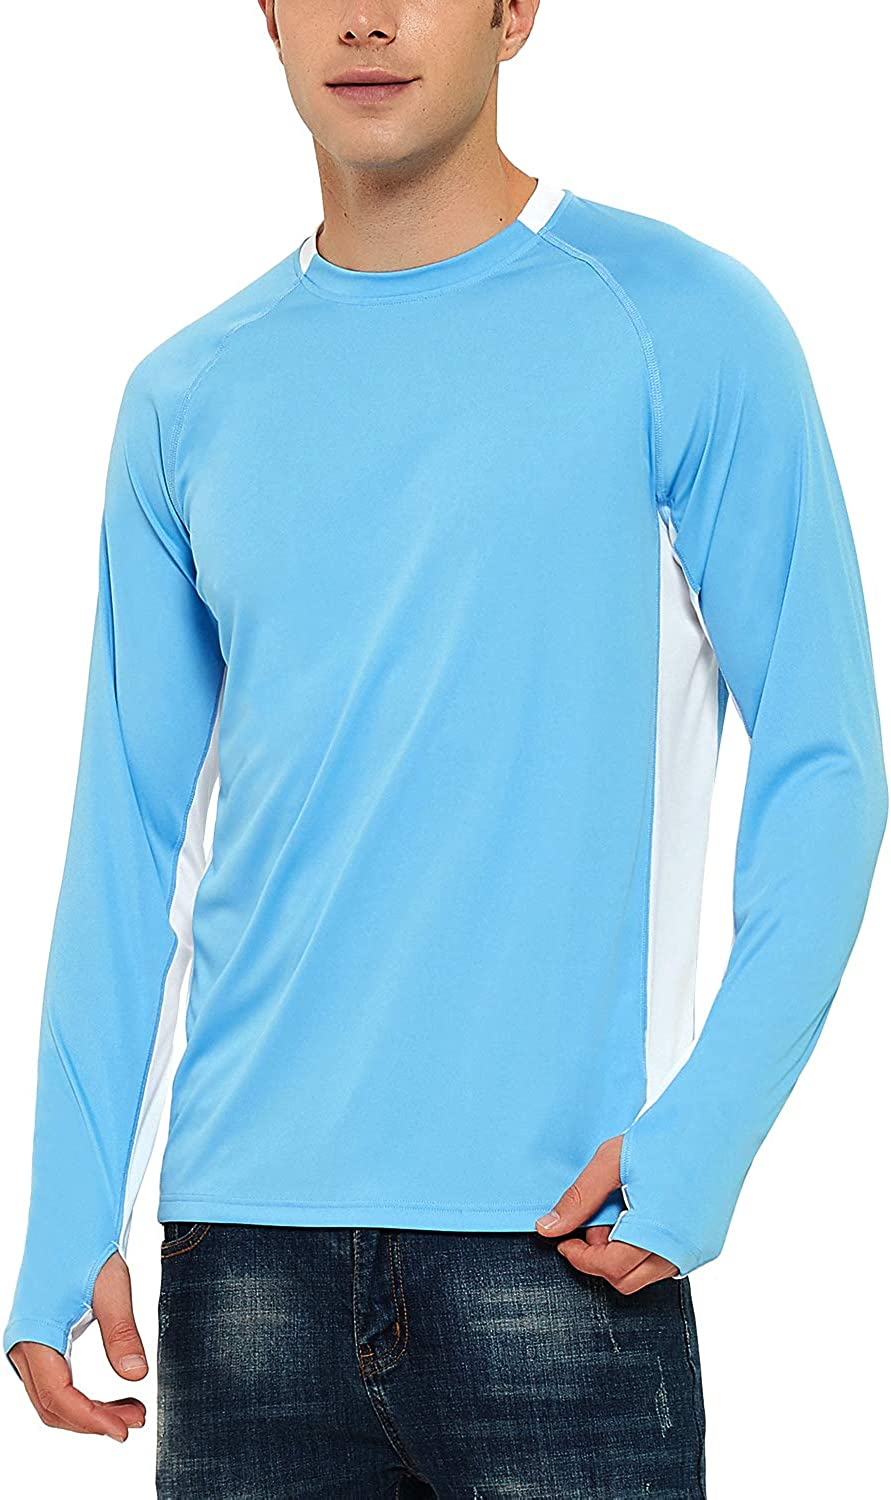 FIRST WAY Mens UPF 50 Sun Protection Shirt with Long Sleeve Hoodie Outdoor Workout Hiking Fishing Top